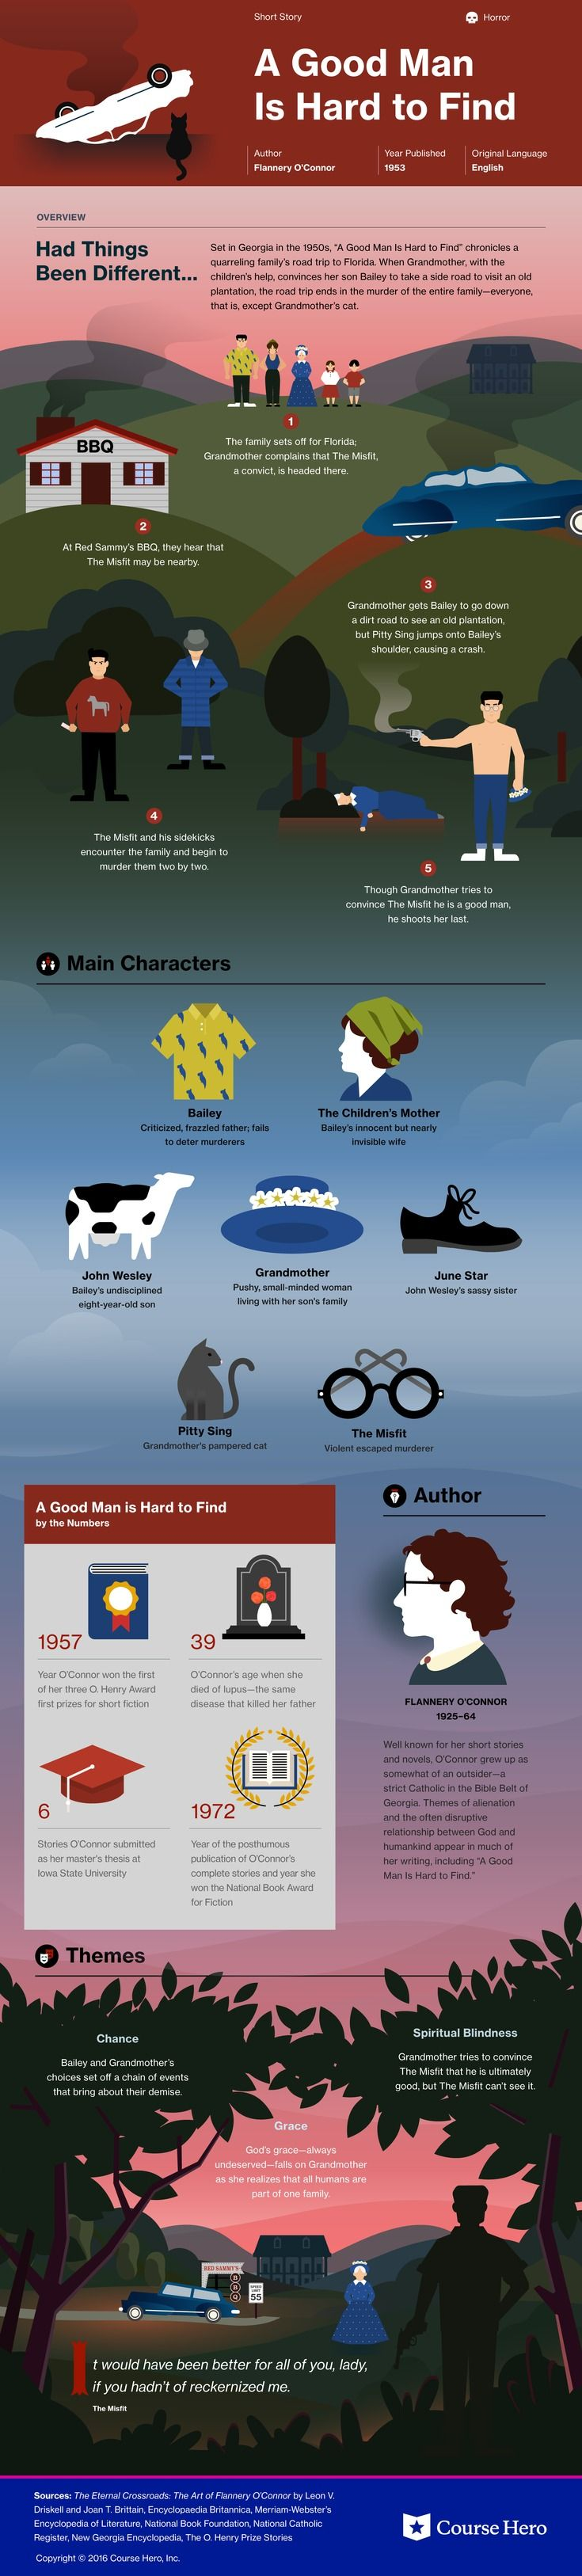 A Good Man Is Hard to Find Infographic | Course Hero